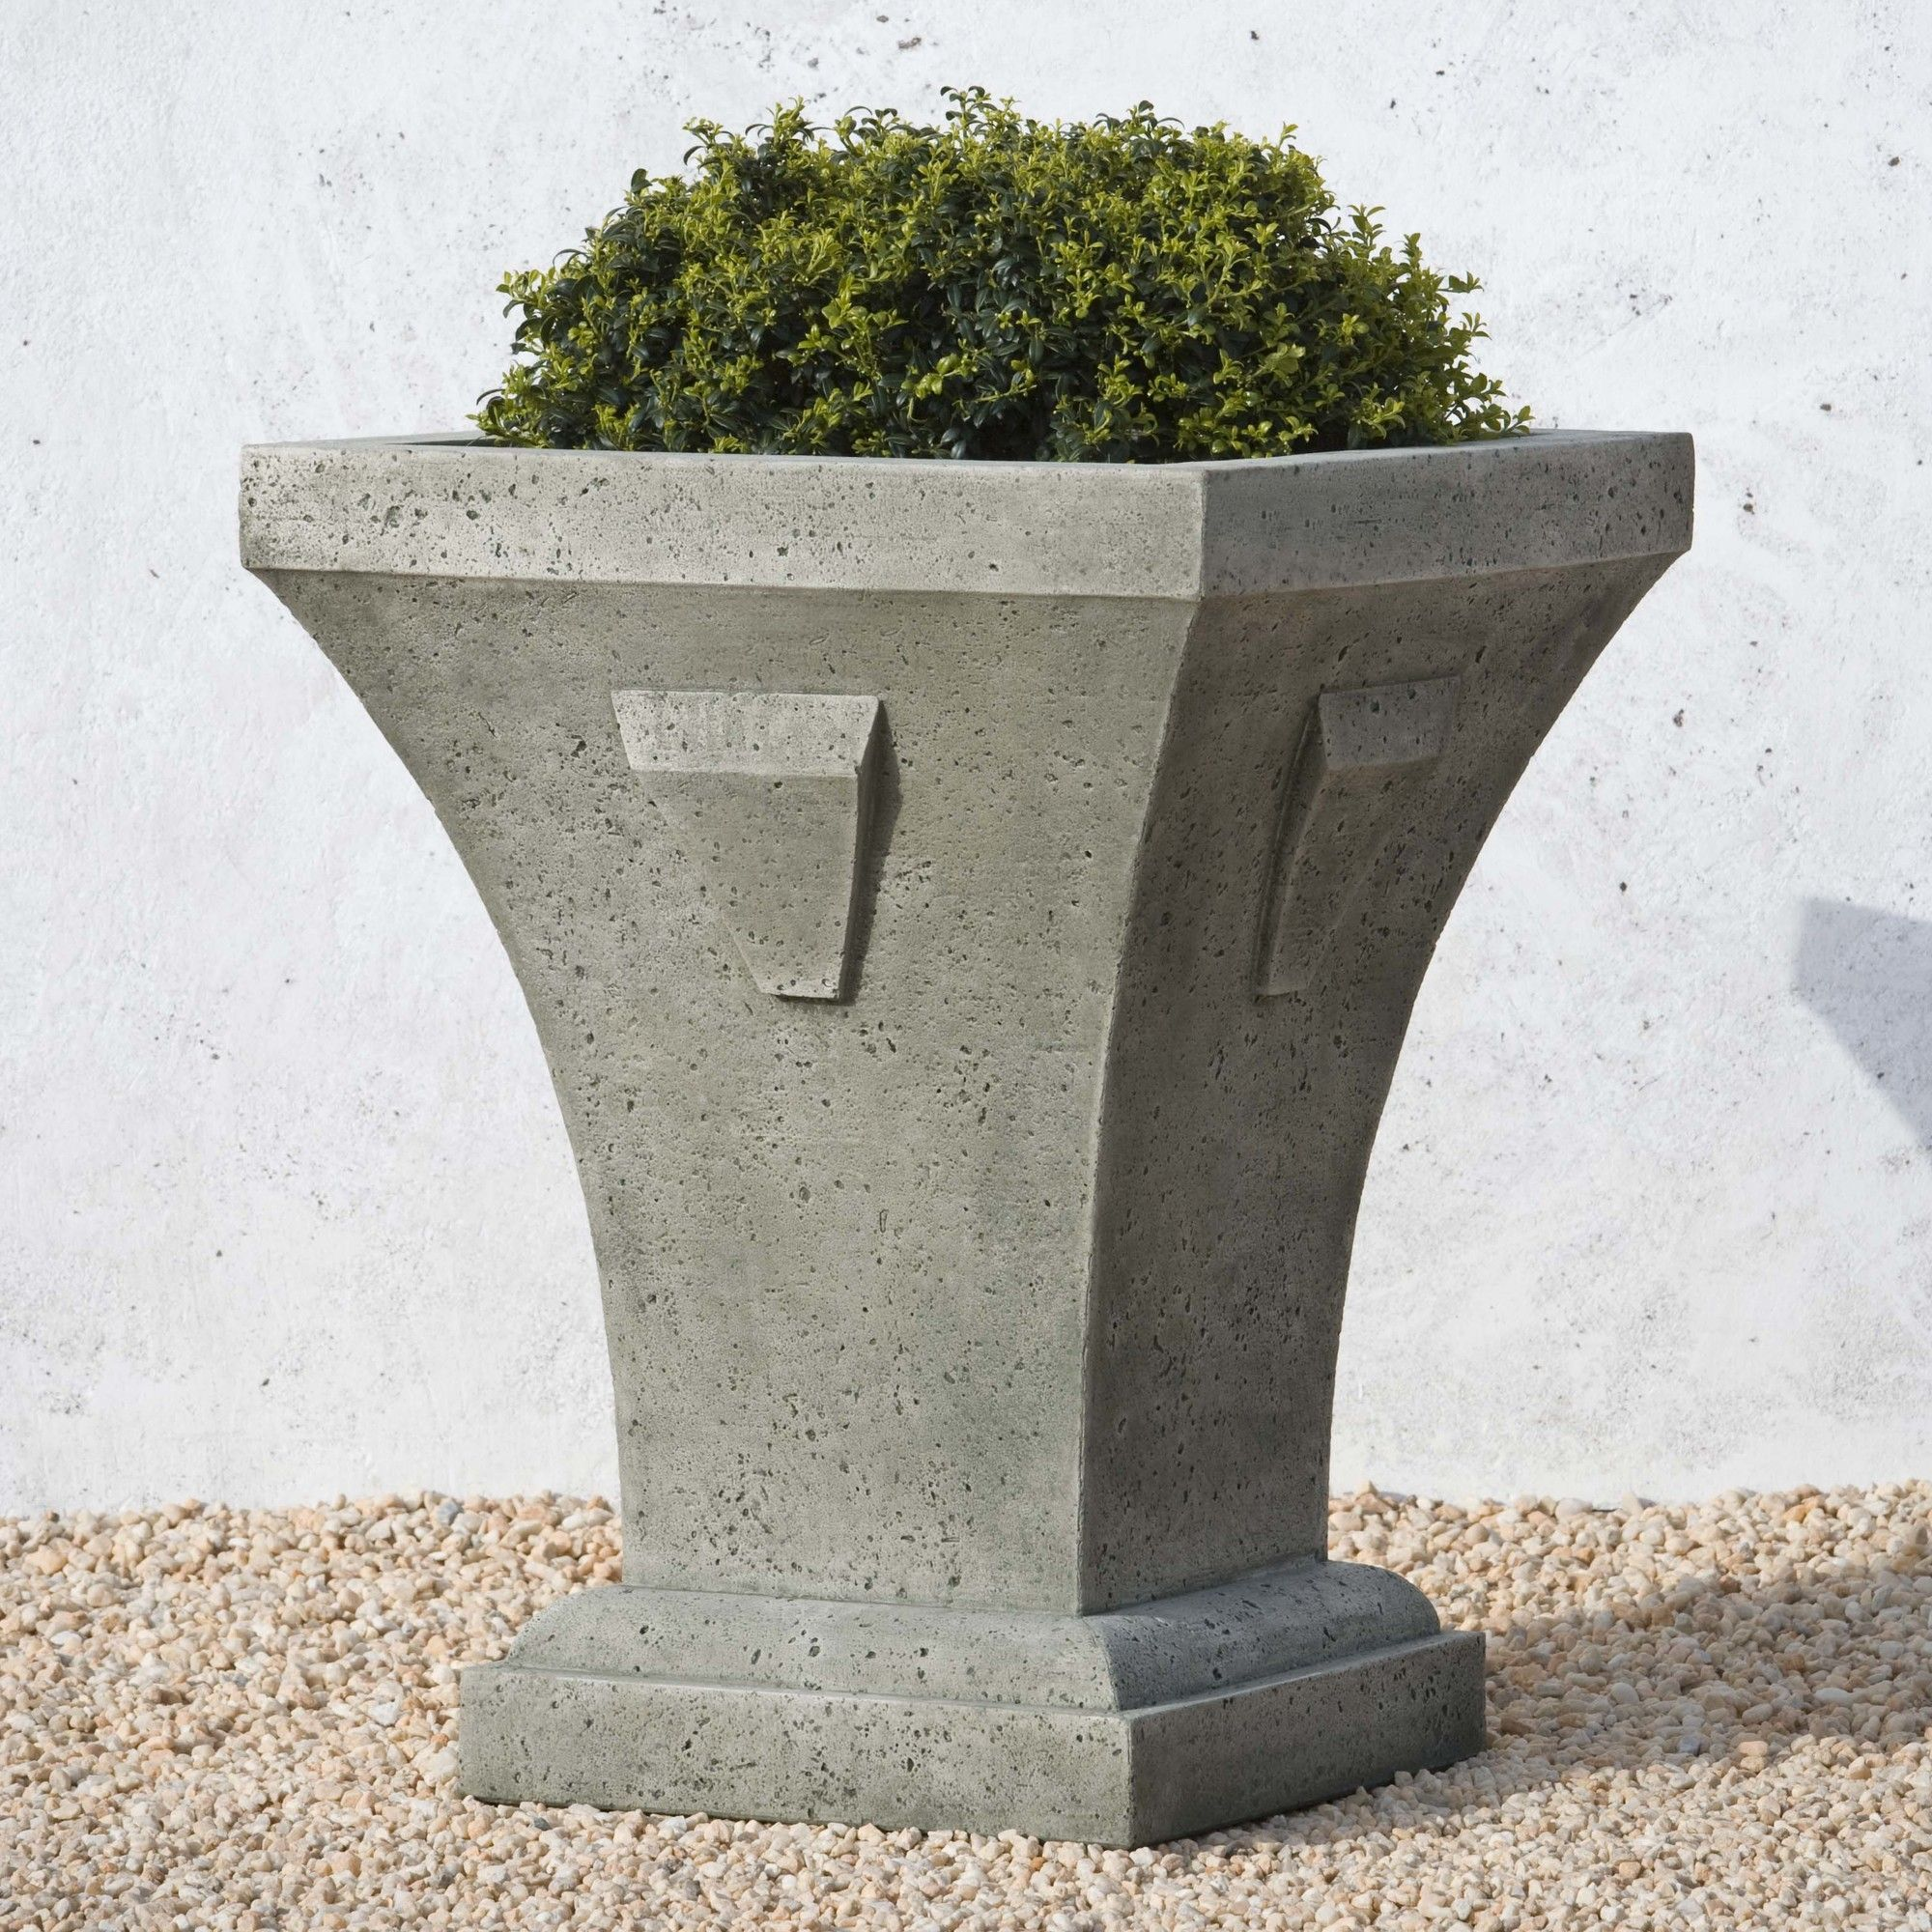 green today ulysses overstock garden christopher product home white knight with urns by free urn planter inch shipping moss